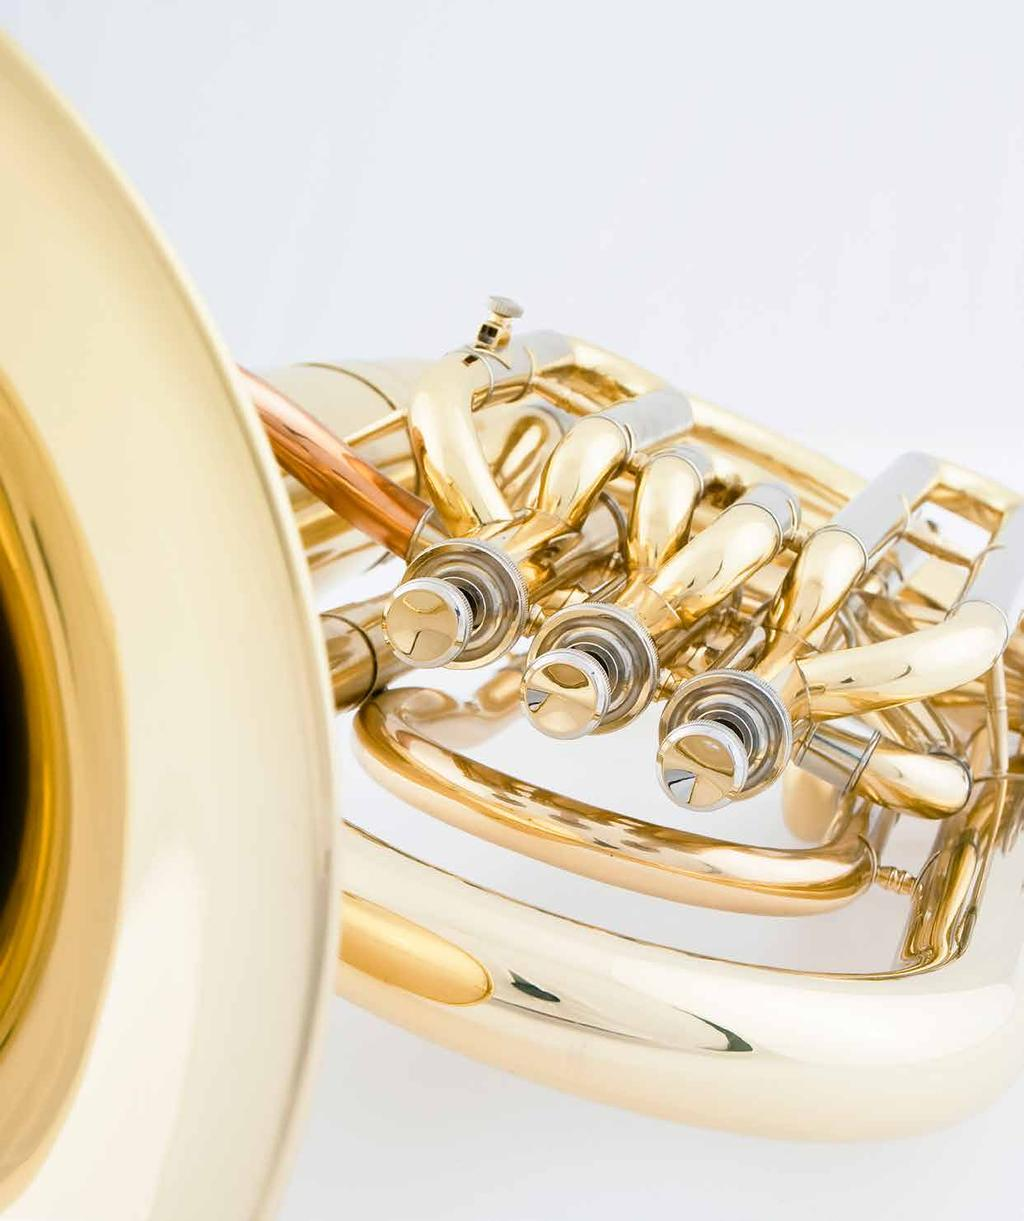 Reliable Arnolds & Sons Ath-300 Tenorhorn High Quality Materials Musical Instruments & Gear